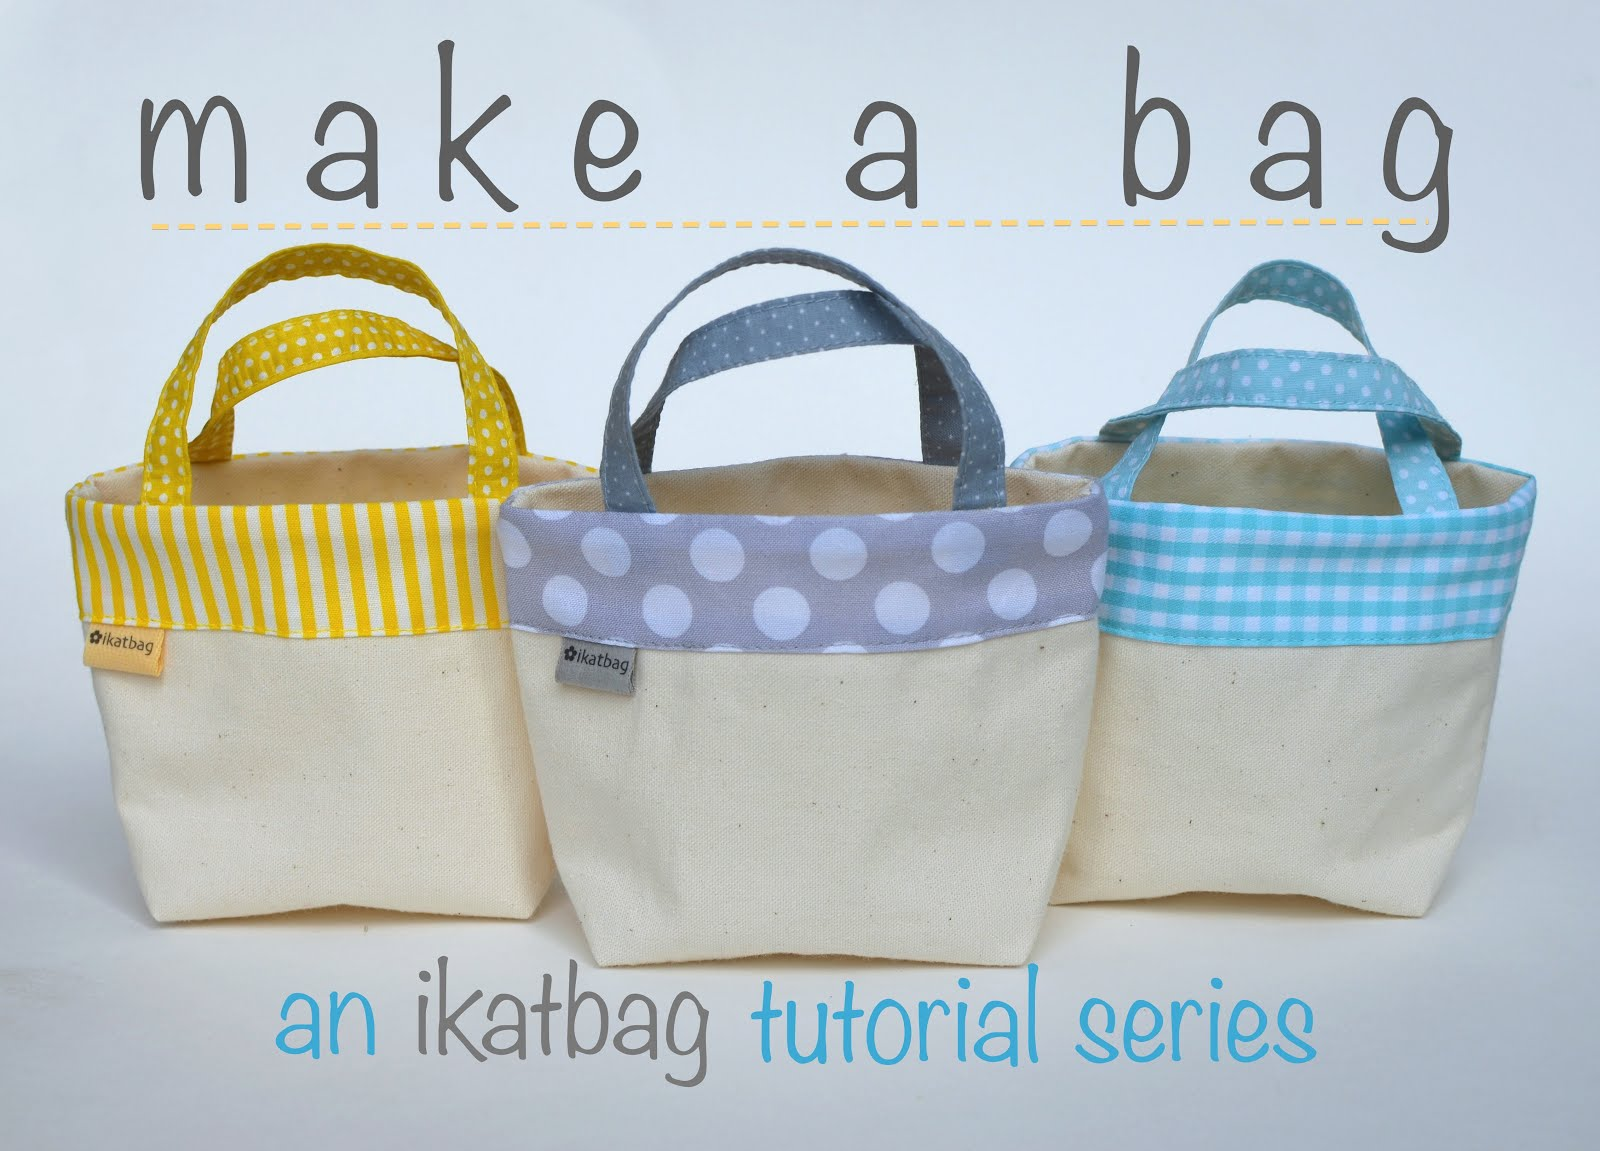 Discussion on this topic: How to Make a Bag from a , how-to-make-a-bag-from-a/